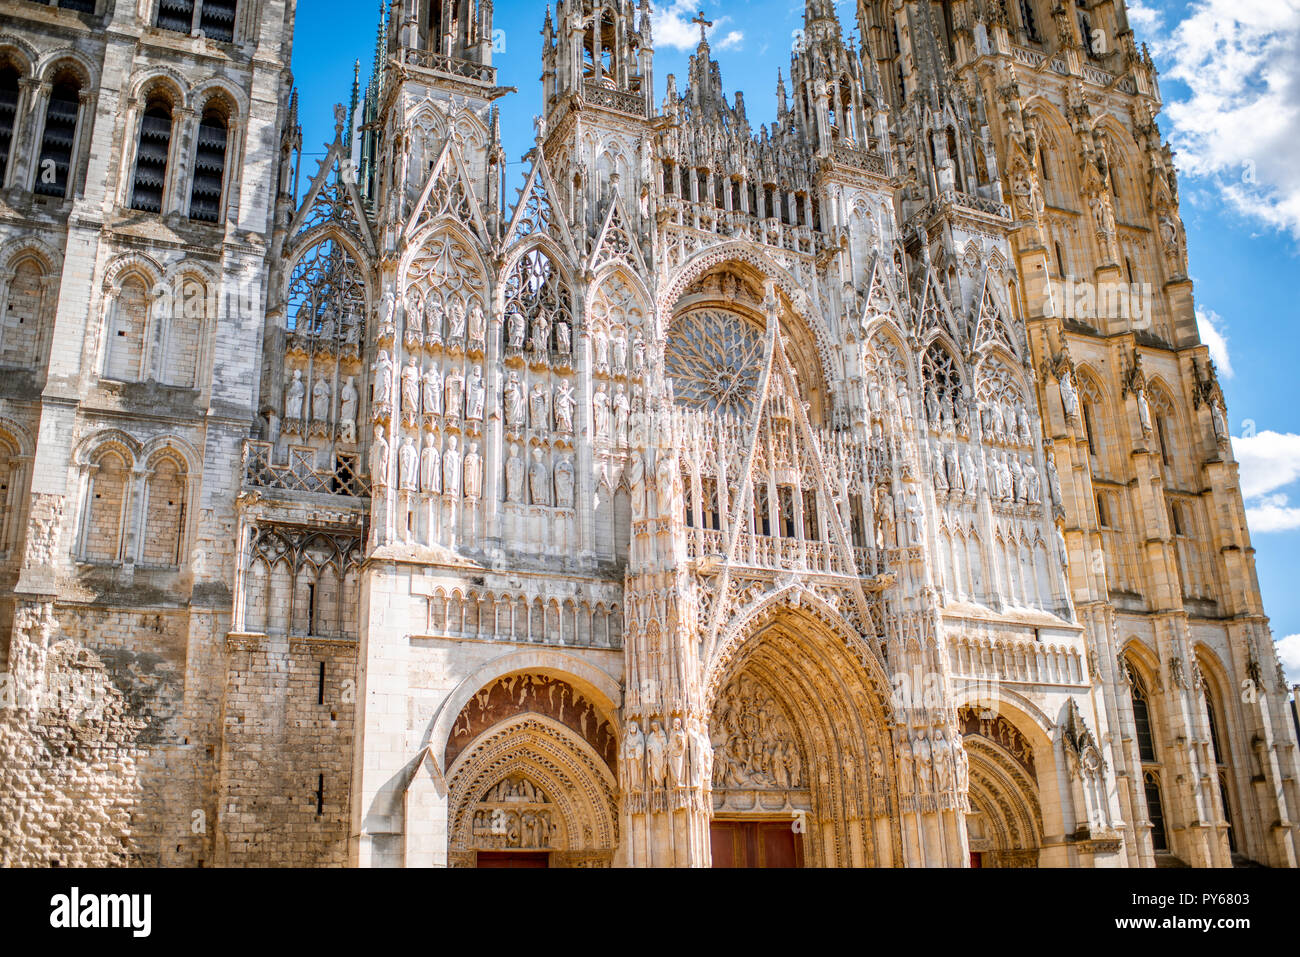 Rouen Cathedral France Stock Photos & Rouen Cathedral France